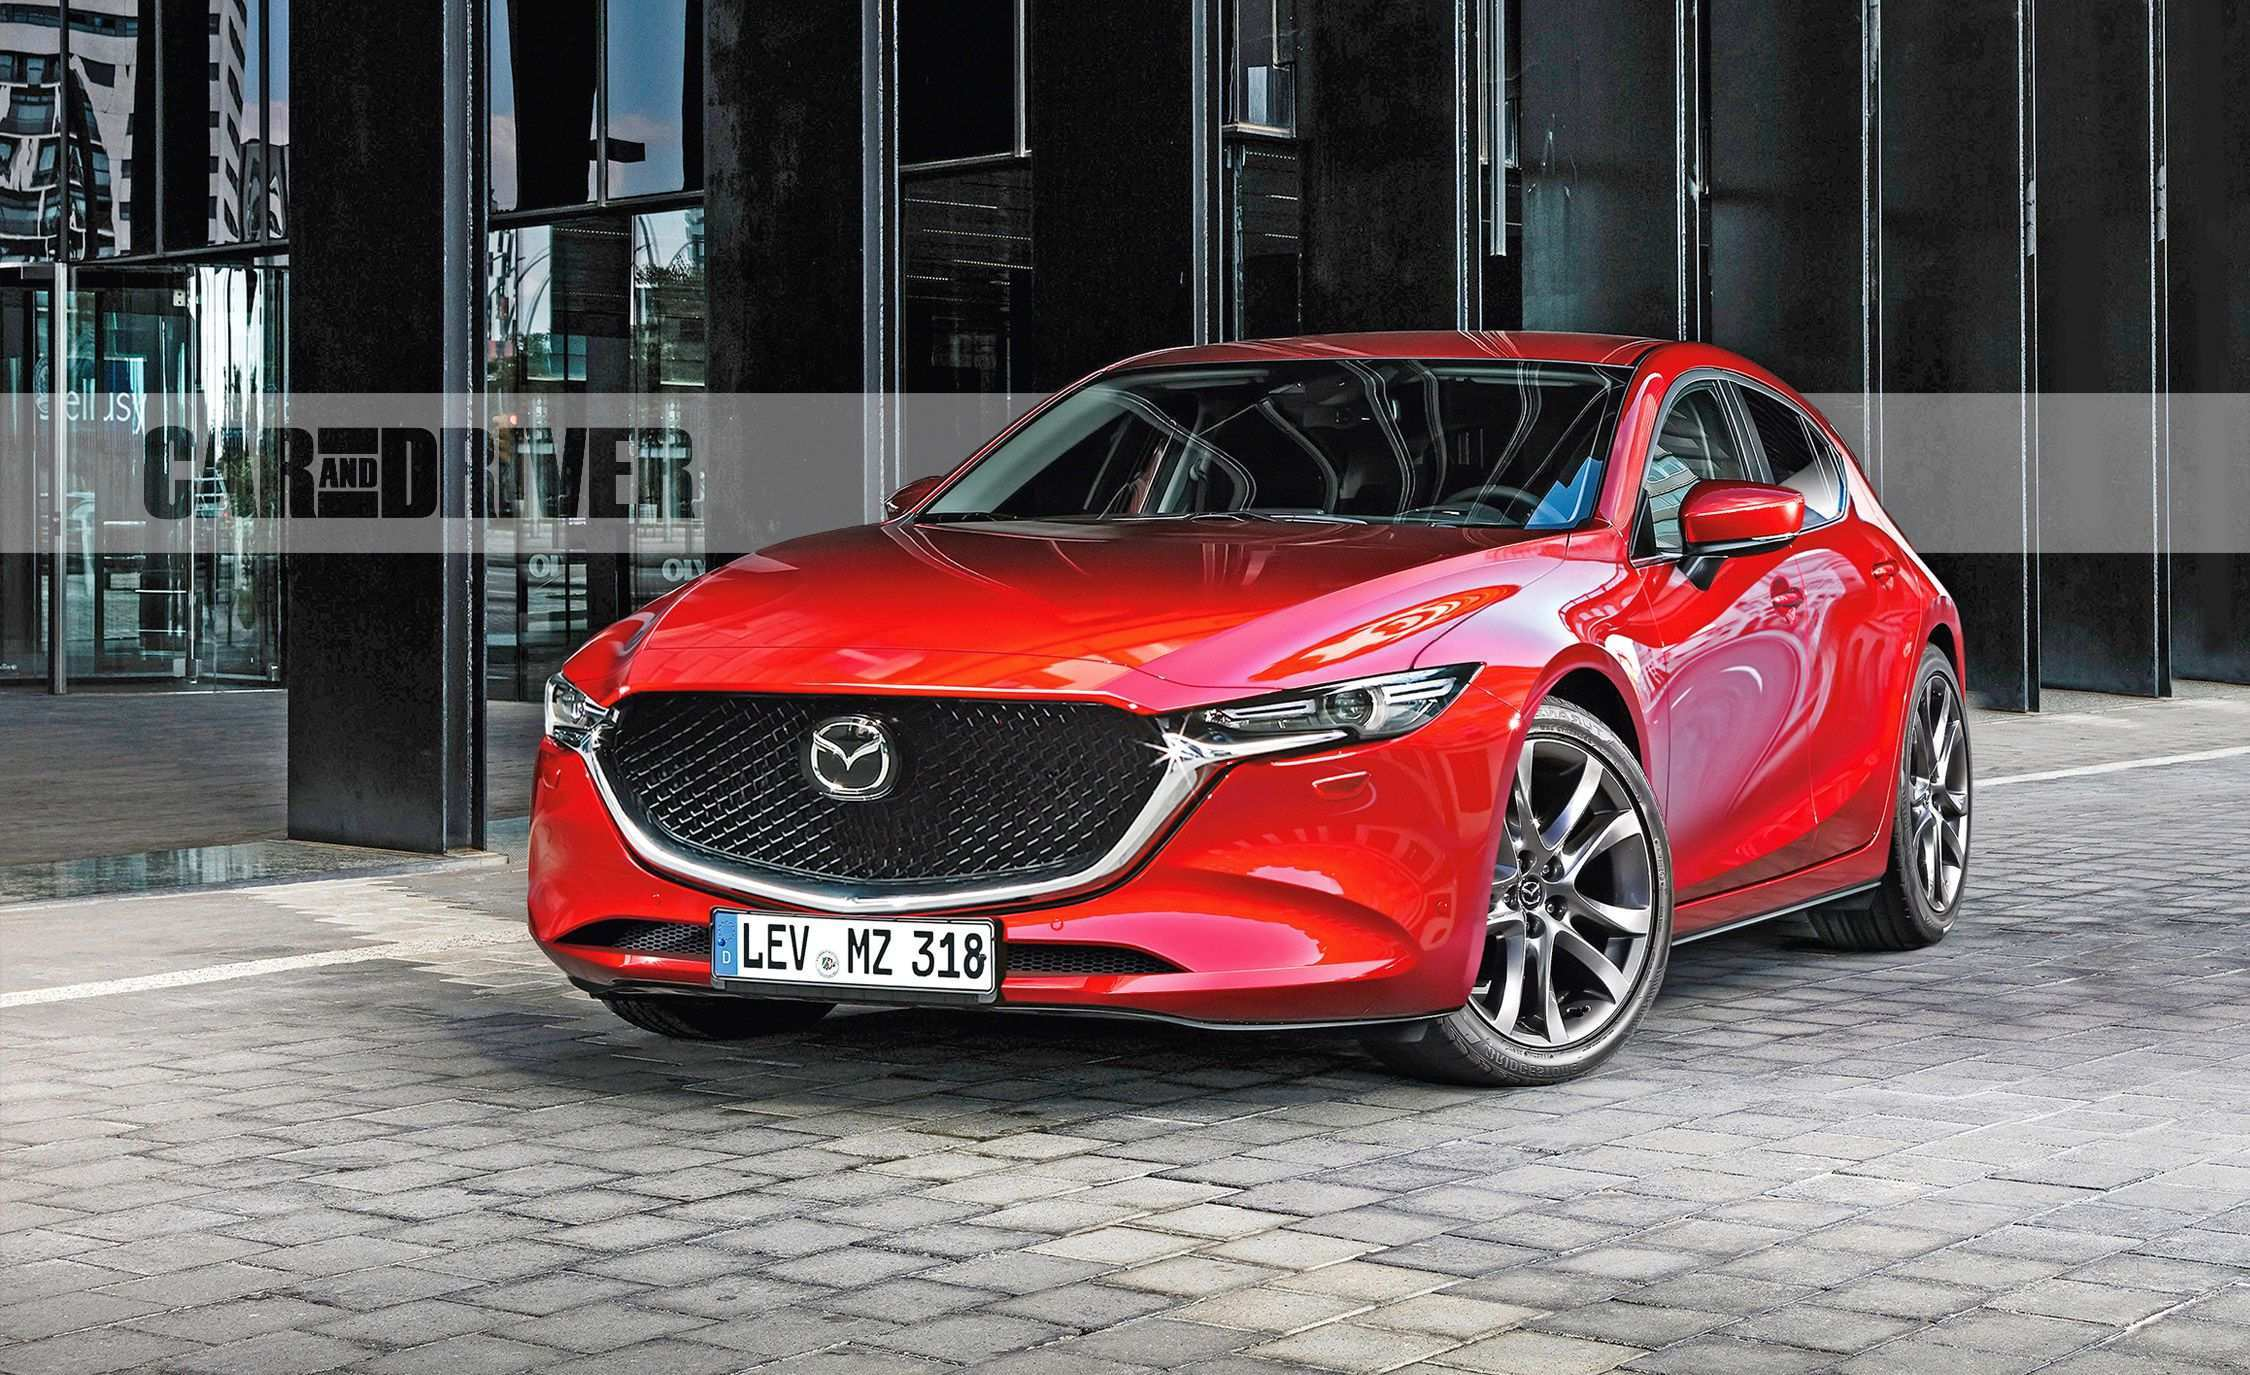 57 Gallery of Mazda Axela 2020 New Review by Mazda Axela 2020